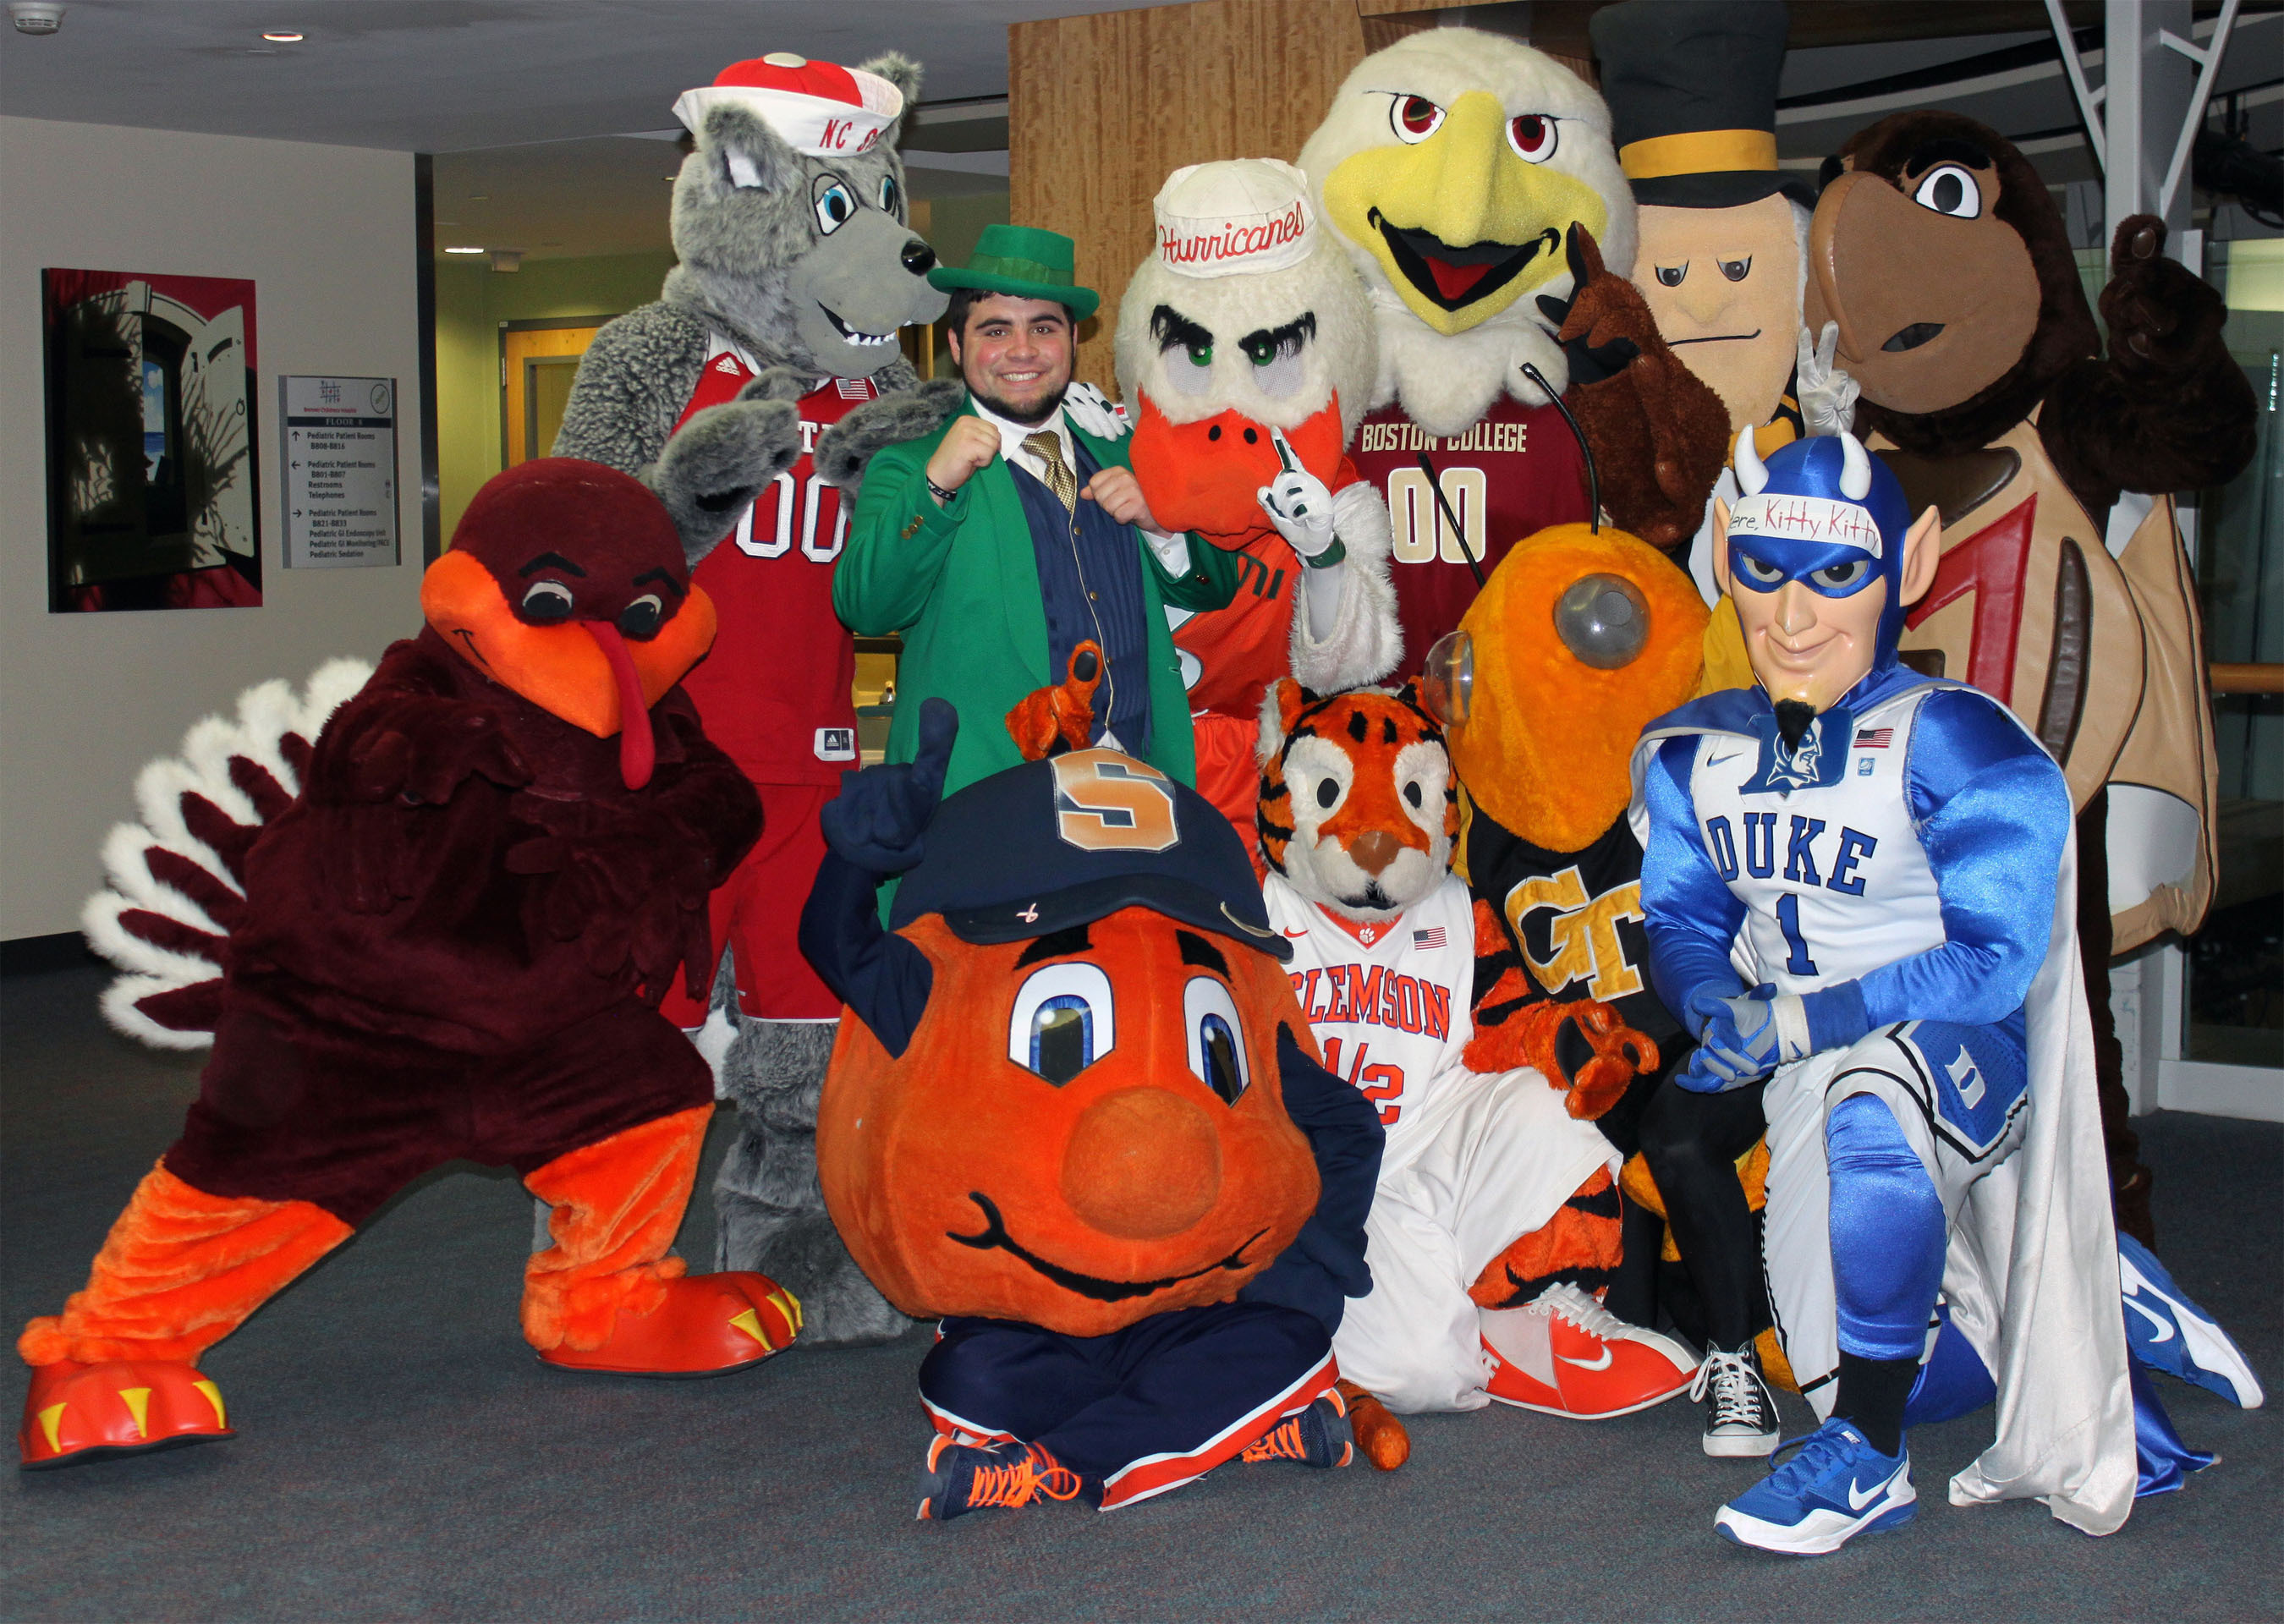 Mascots of the Atlantic Coast Conference strike a pose during their visit to Brenner Children's Hospital. The mascots stopped by as part of an outreach initiative for the 2014 ACC Men's Basketball Tournament. (PRNewsFoto/Wake Forest Baptist Medical Center) (PRNewsFoto/WAKE FOREST BAPTIST MEDICAL ...)